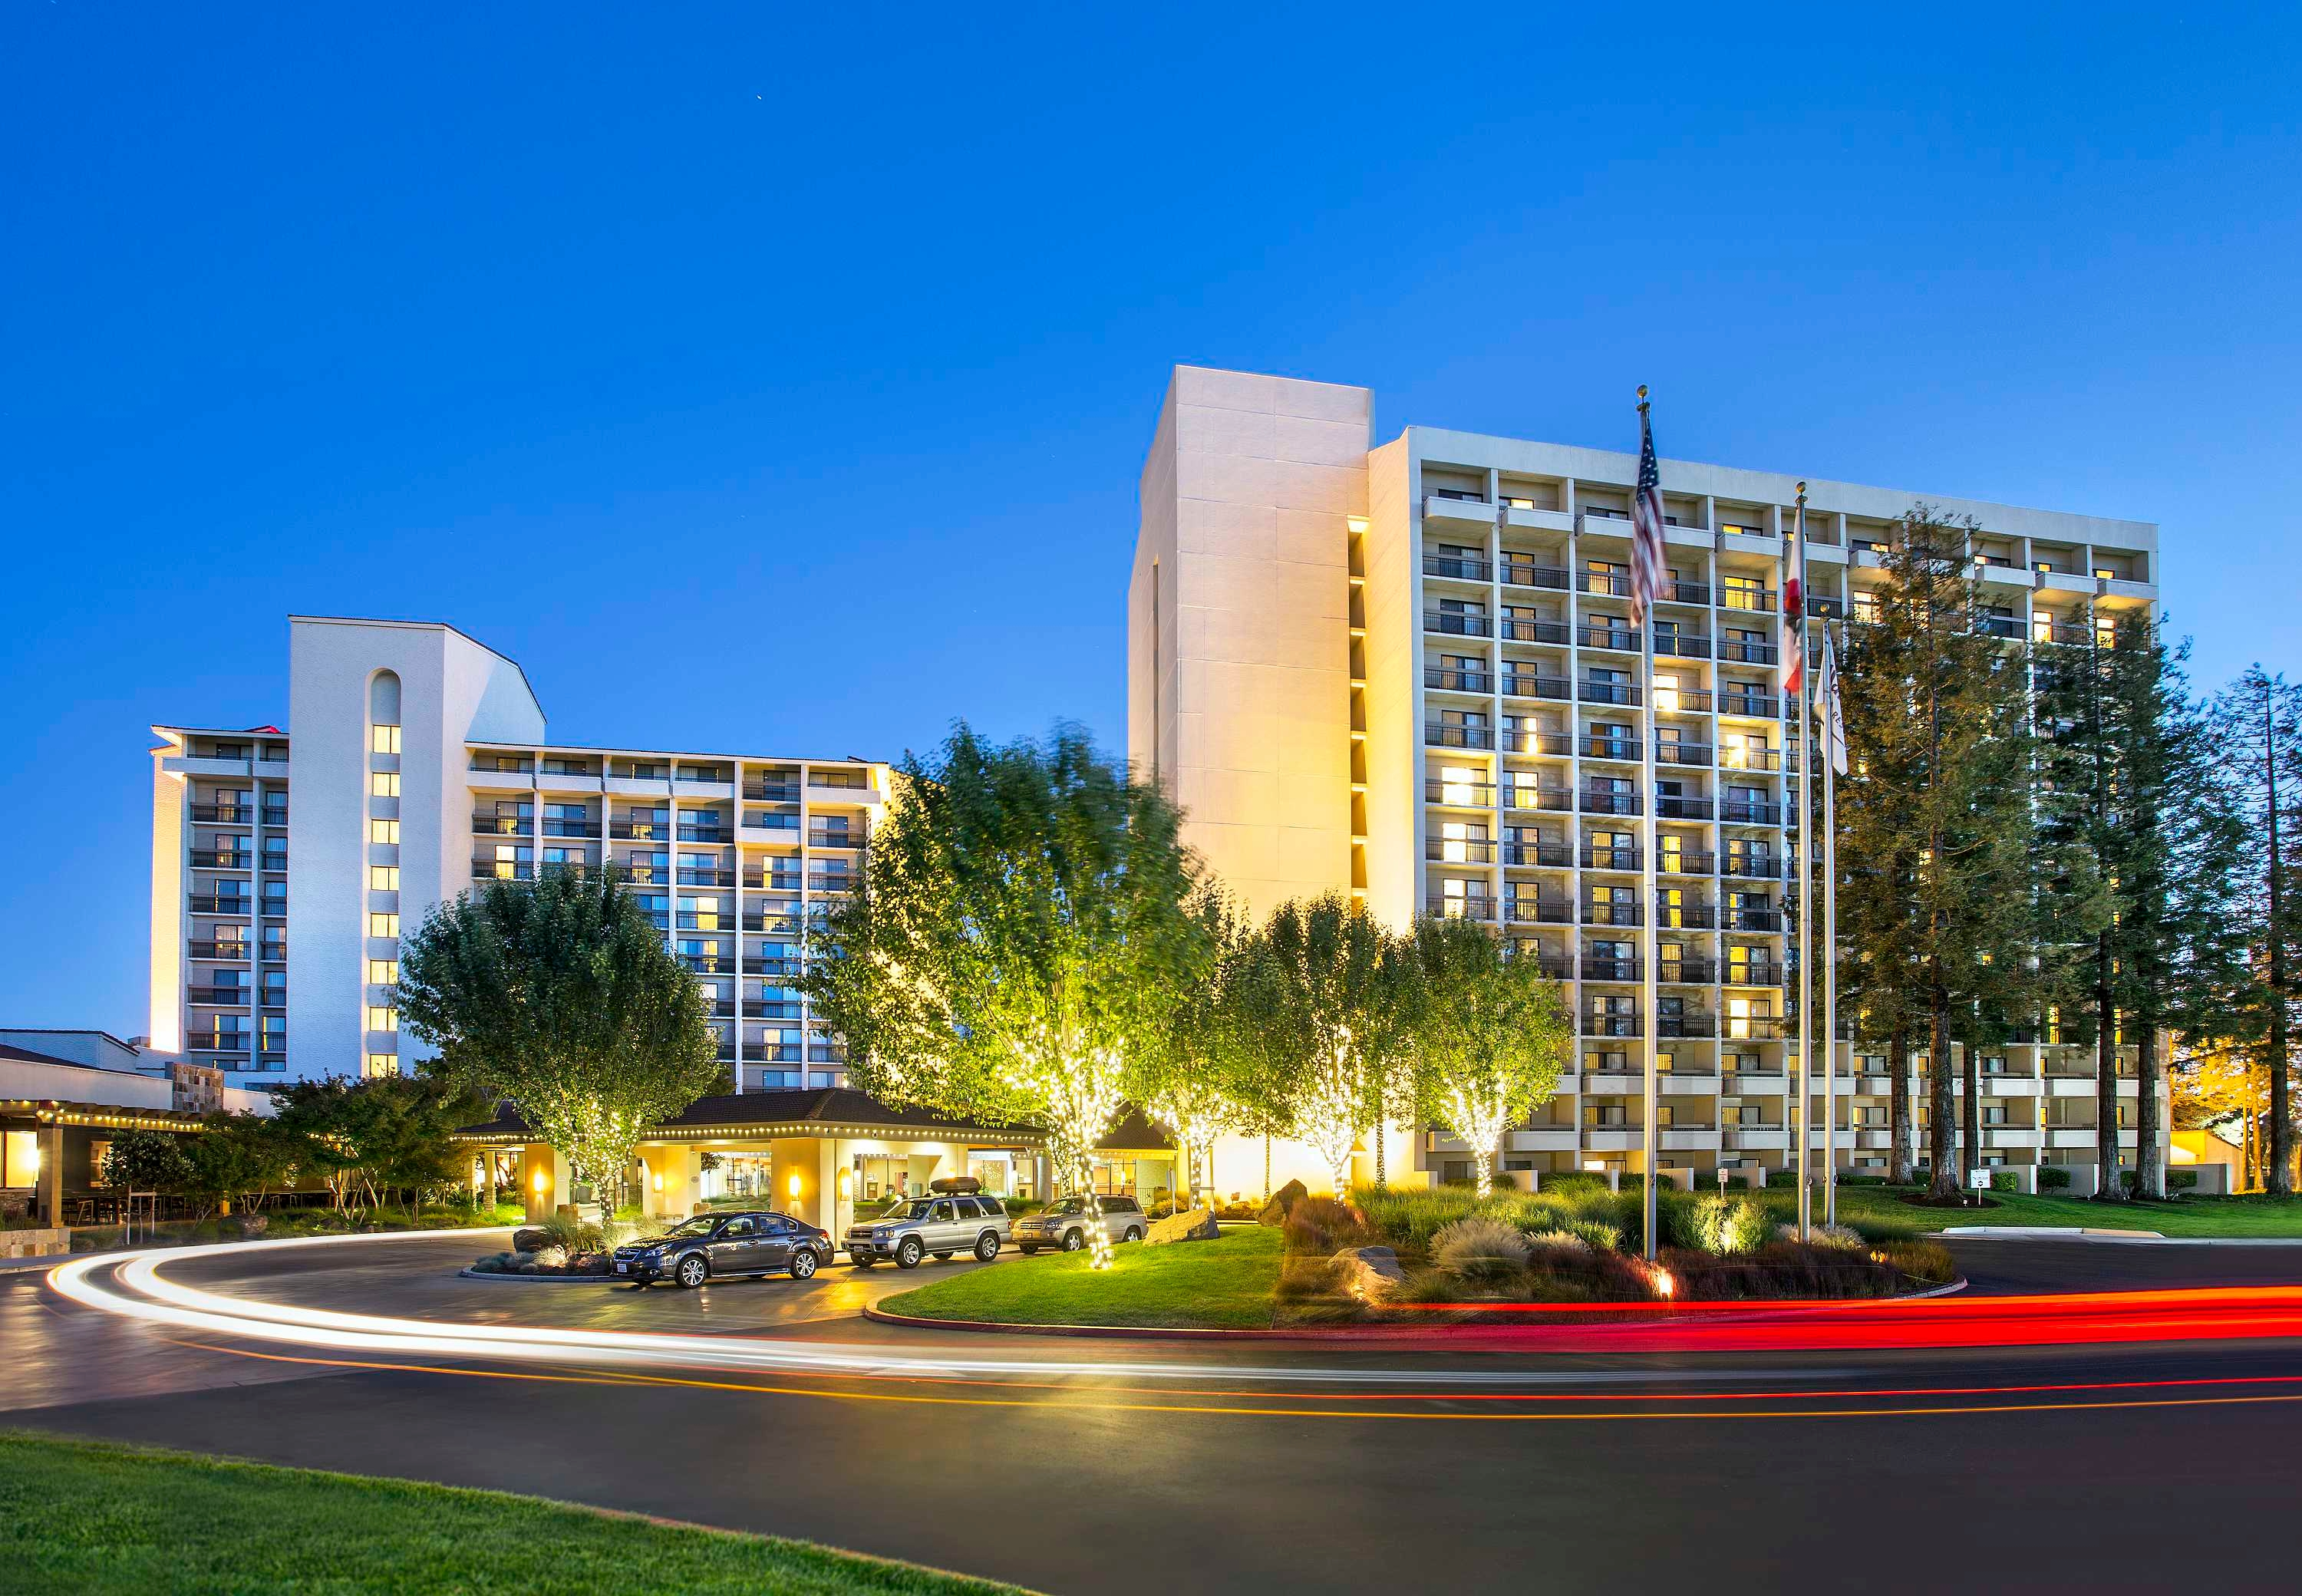 Hotels In Sunnyvale Ca